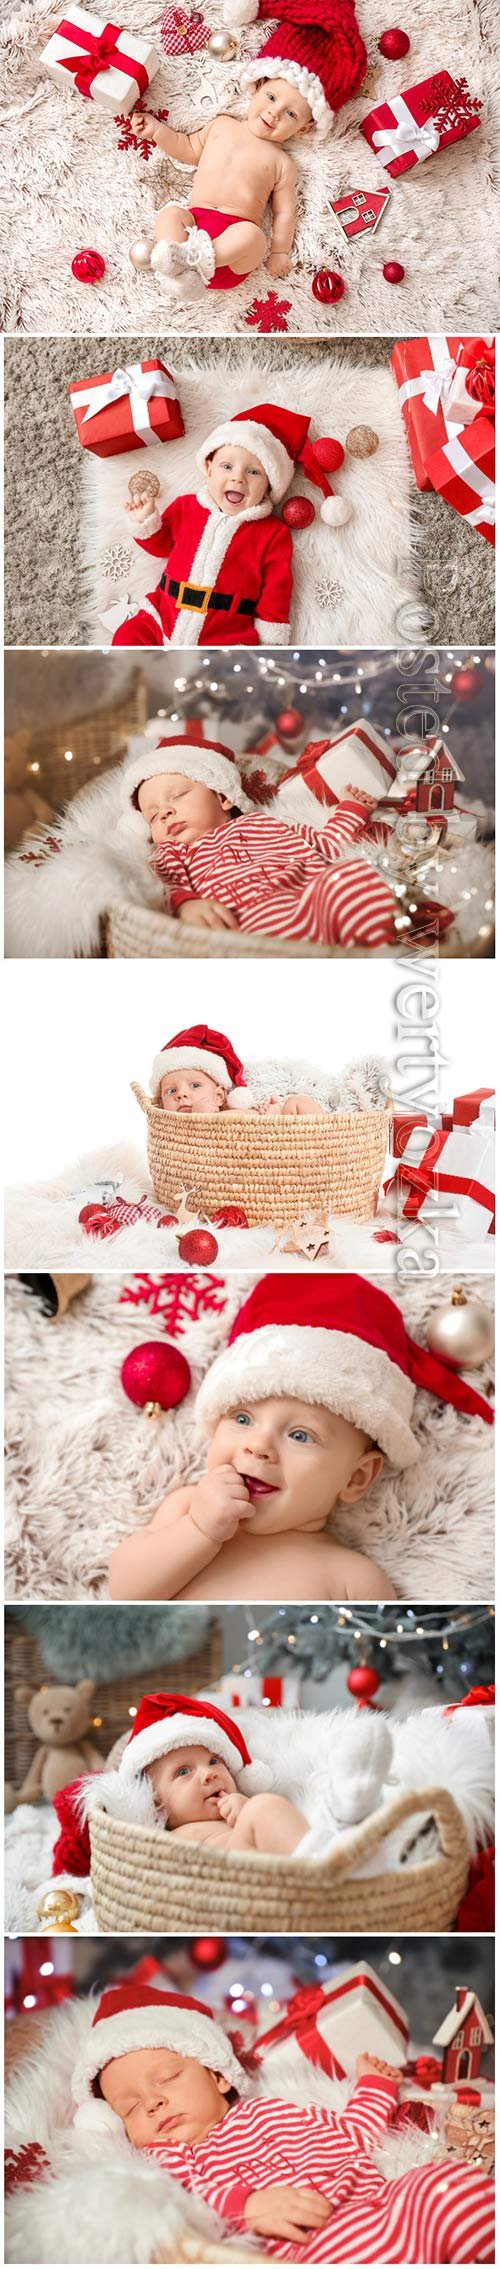 Cute little baby in Santa Claus hat and with Christmas gifts lying on plaid